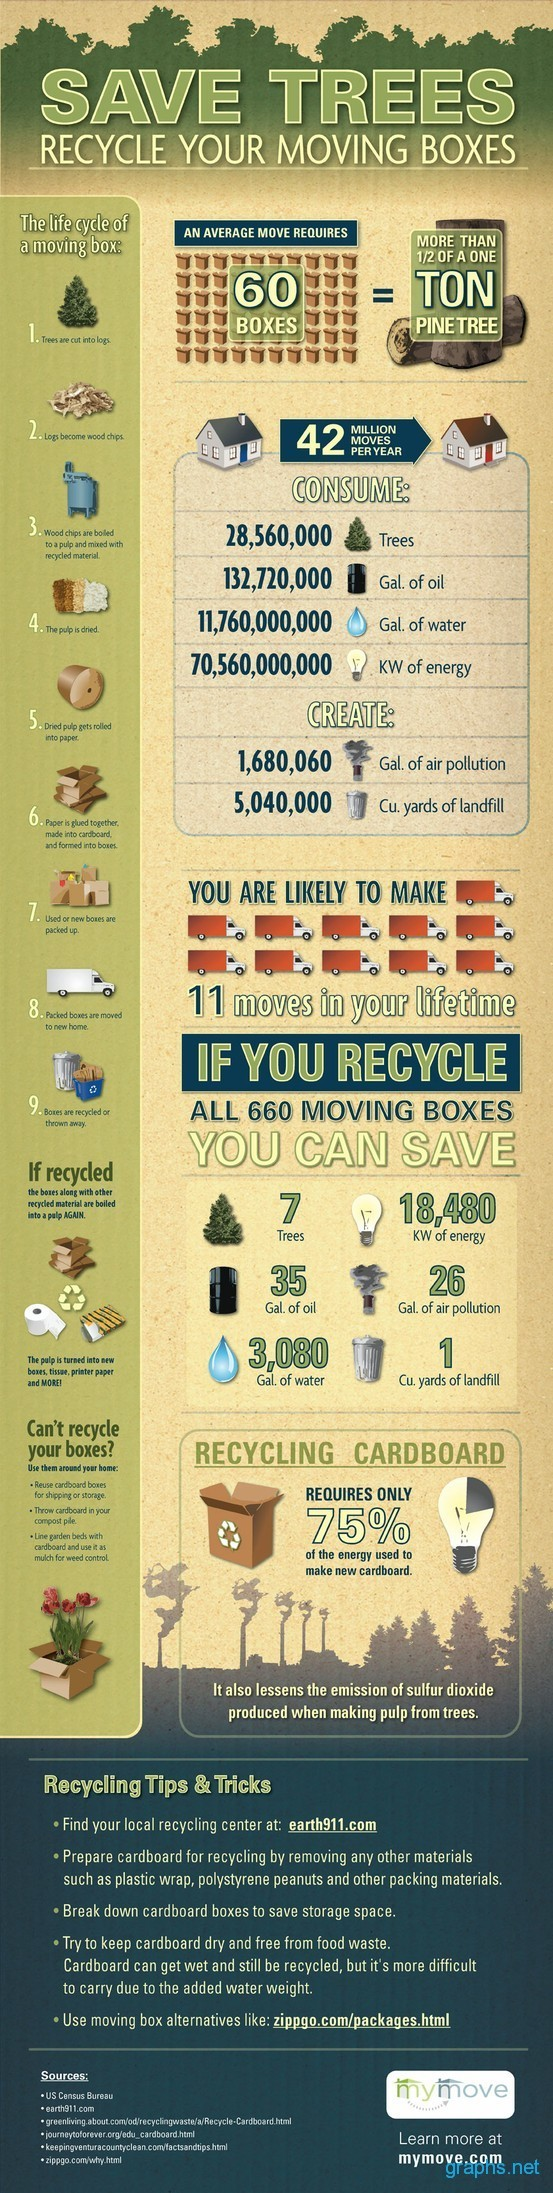 Save Trees by Recycling Moving Boxes